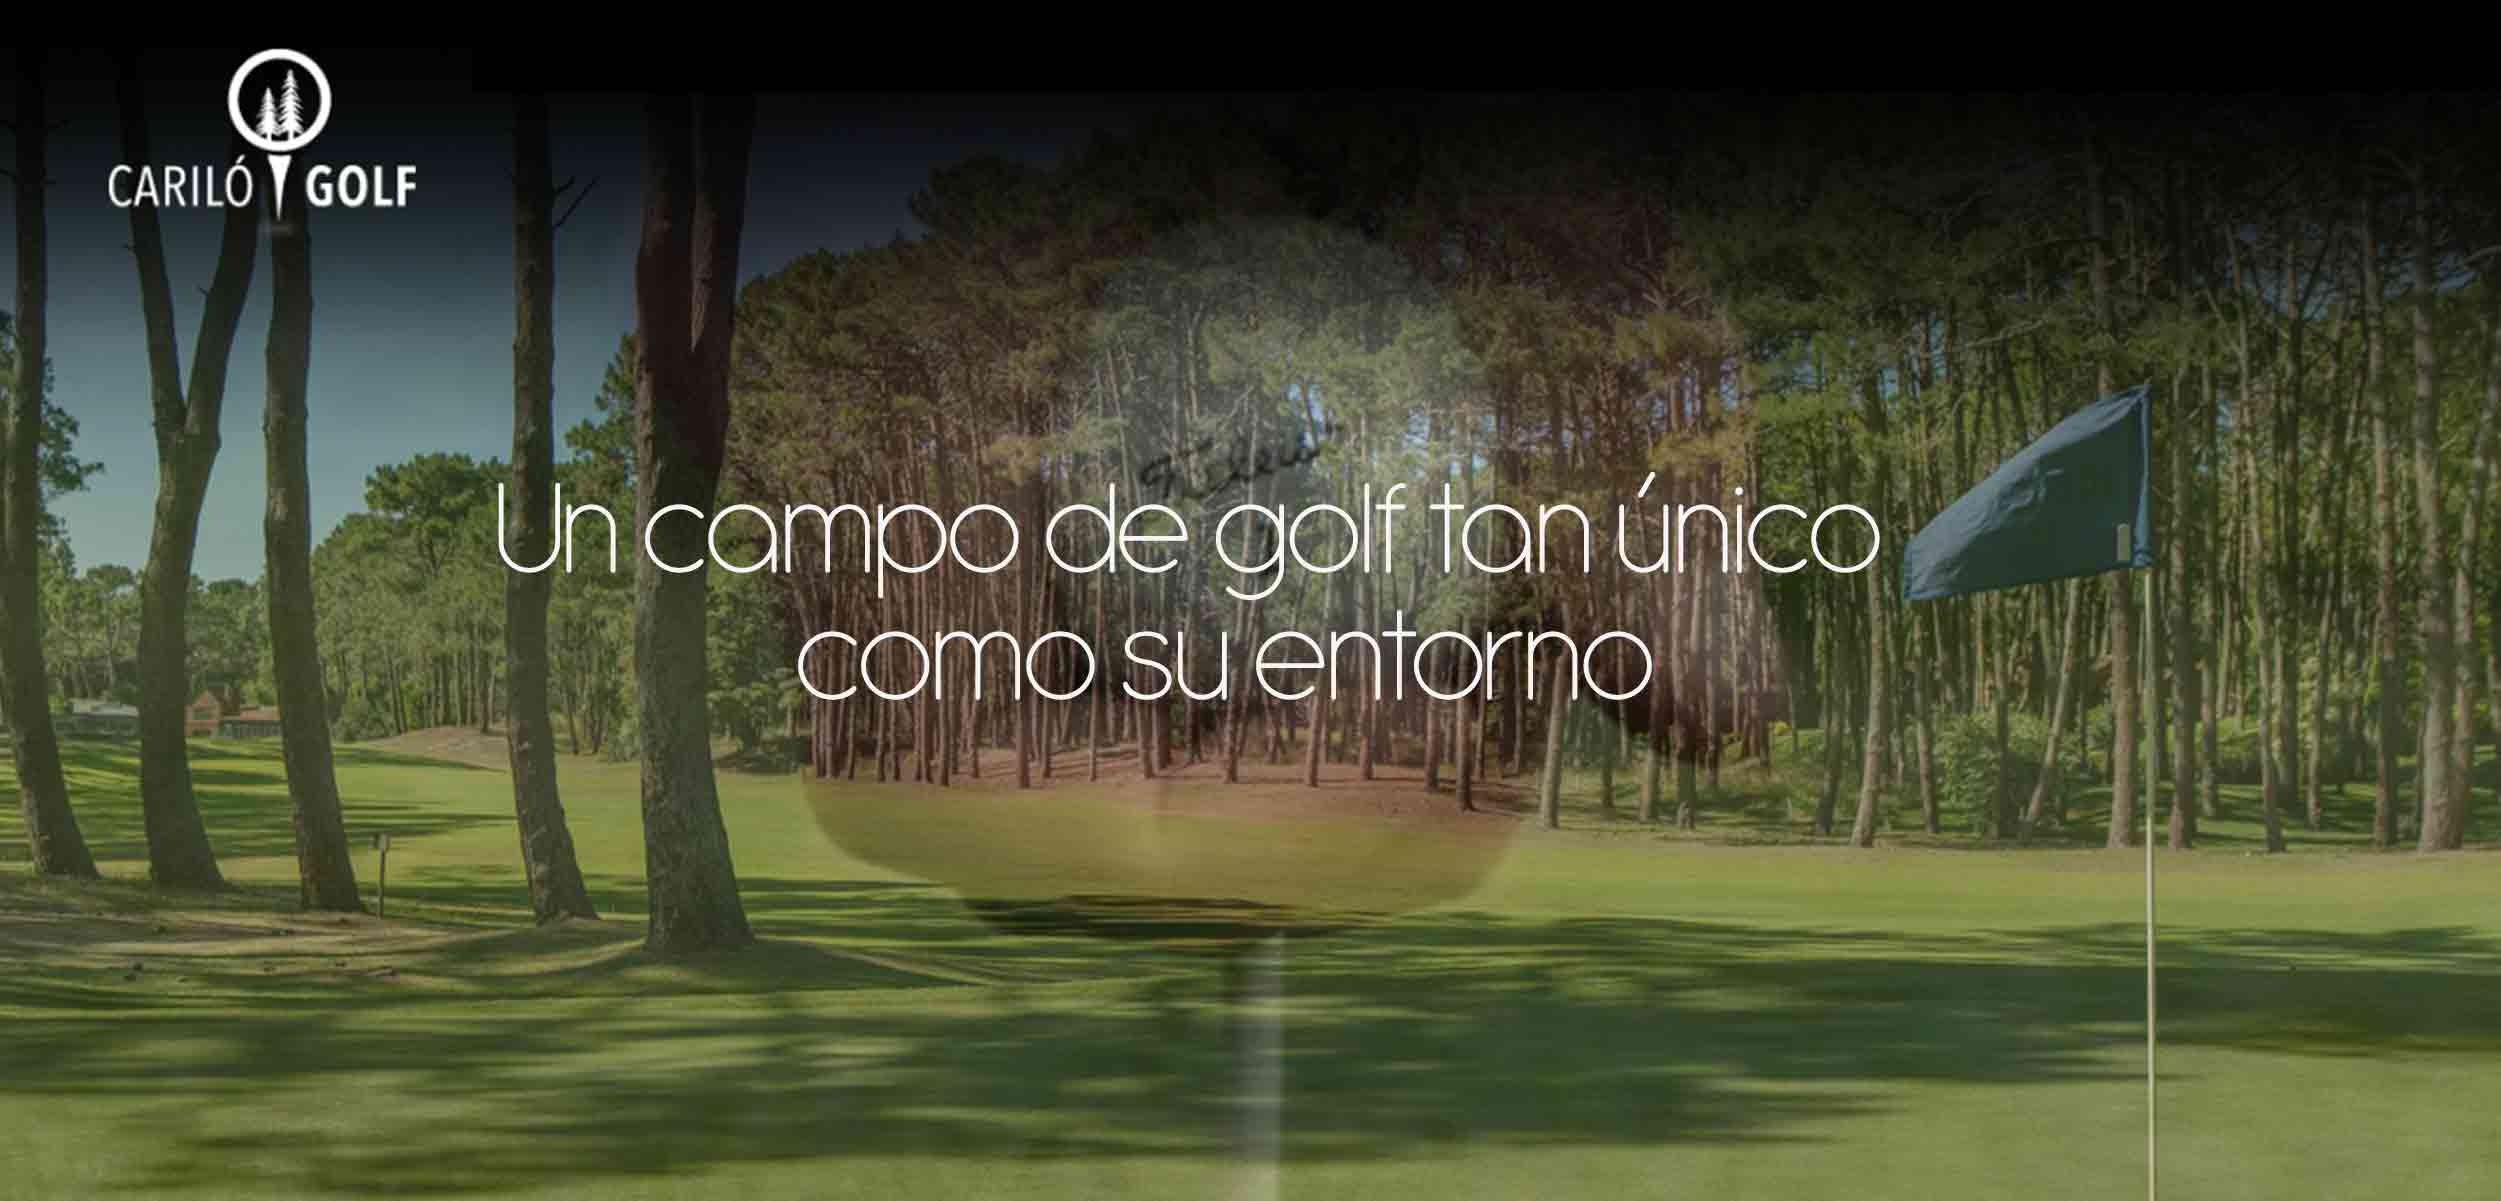 Carilo Golf